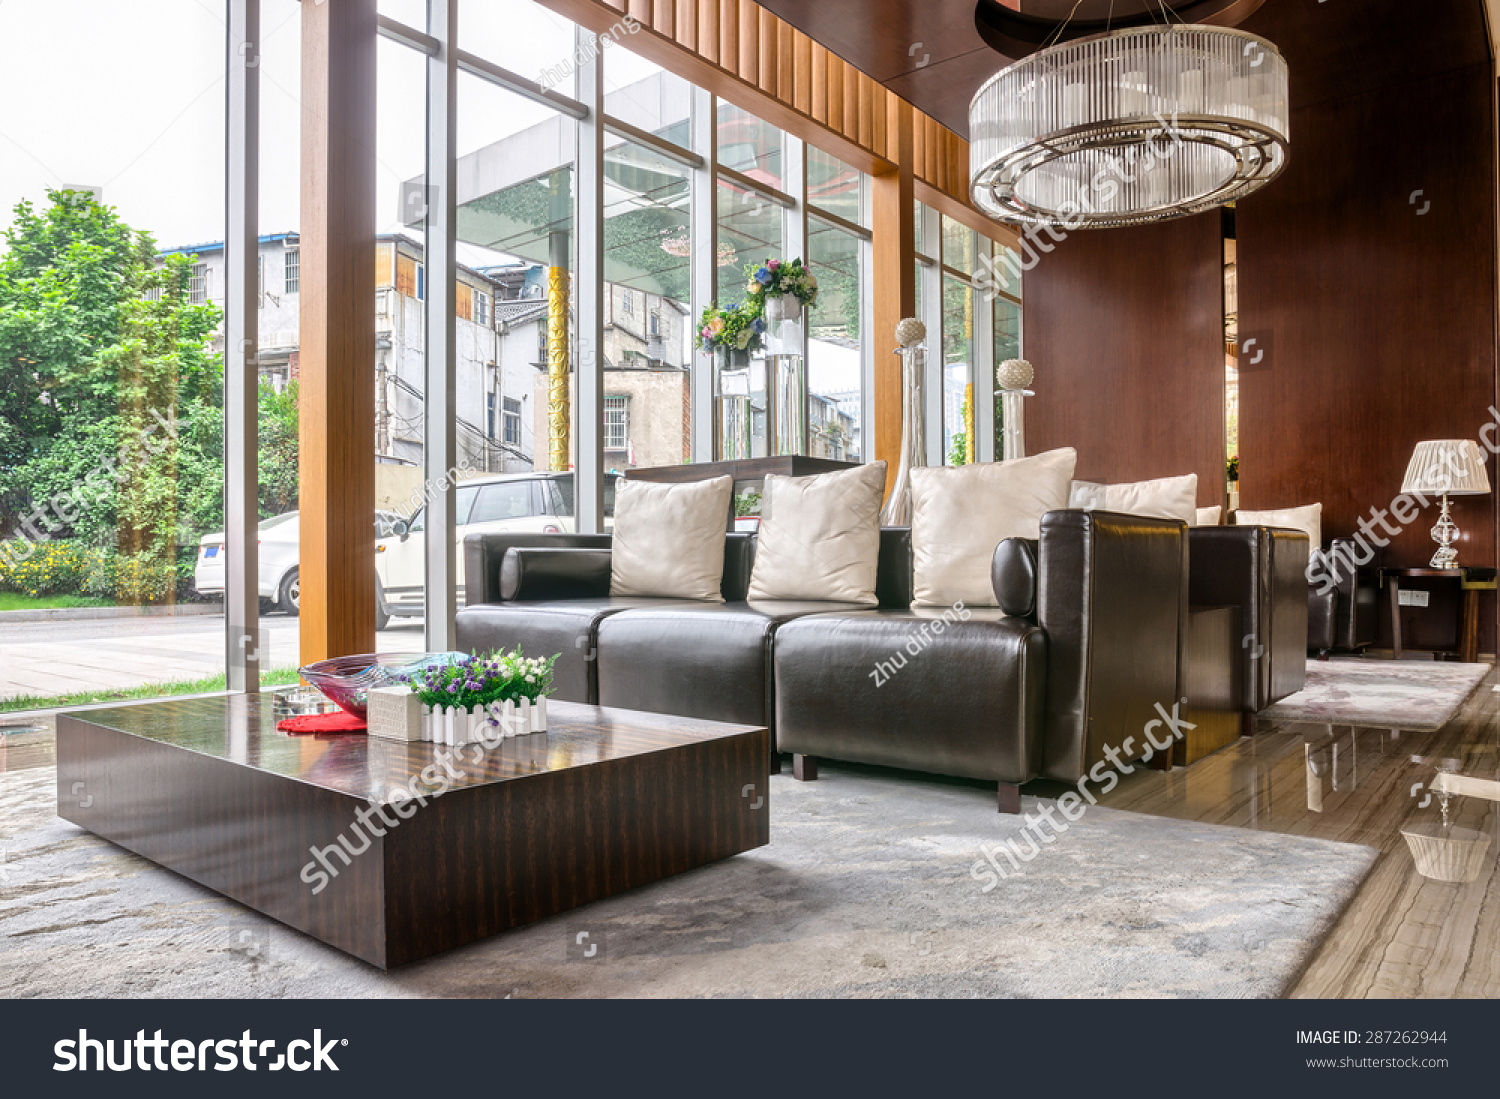 Hotel Foyer Furniture : Luxury hotel lobby furniture modern design stock photo